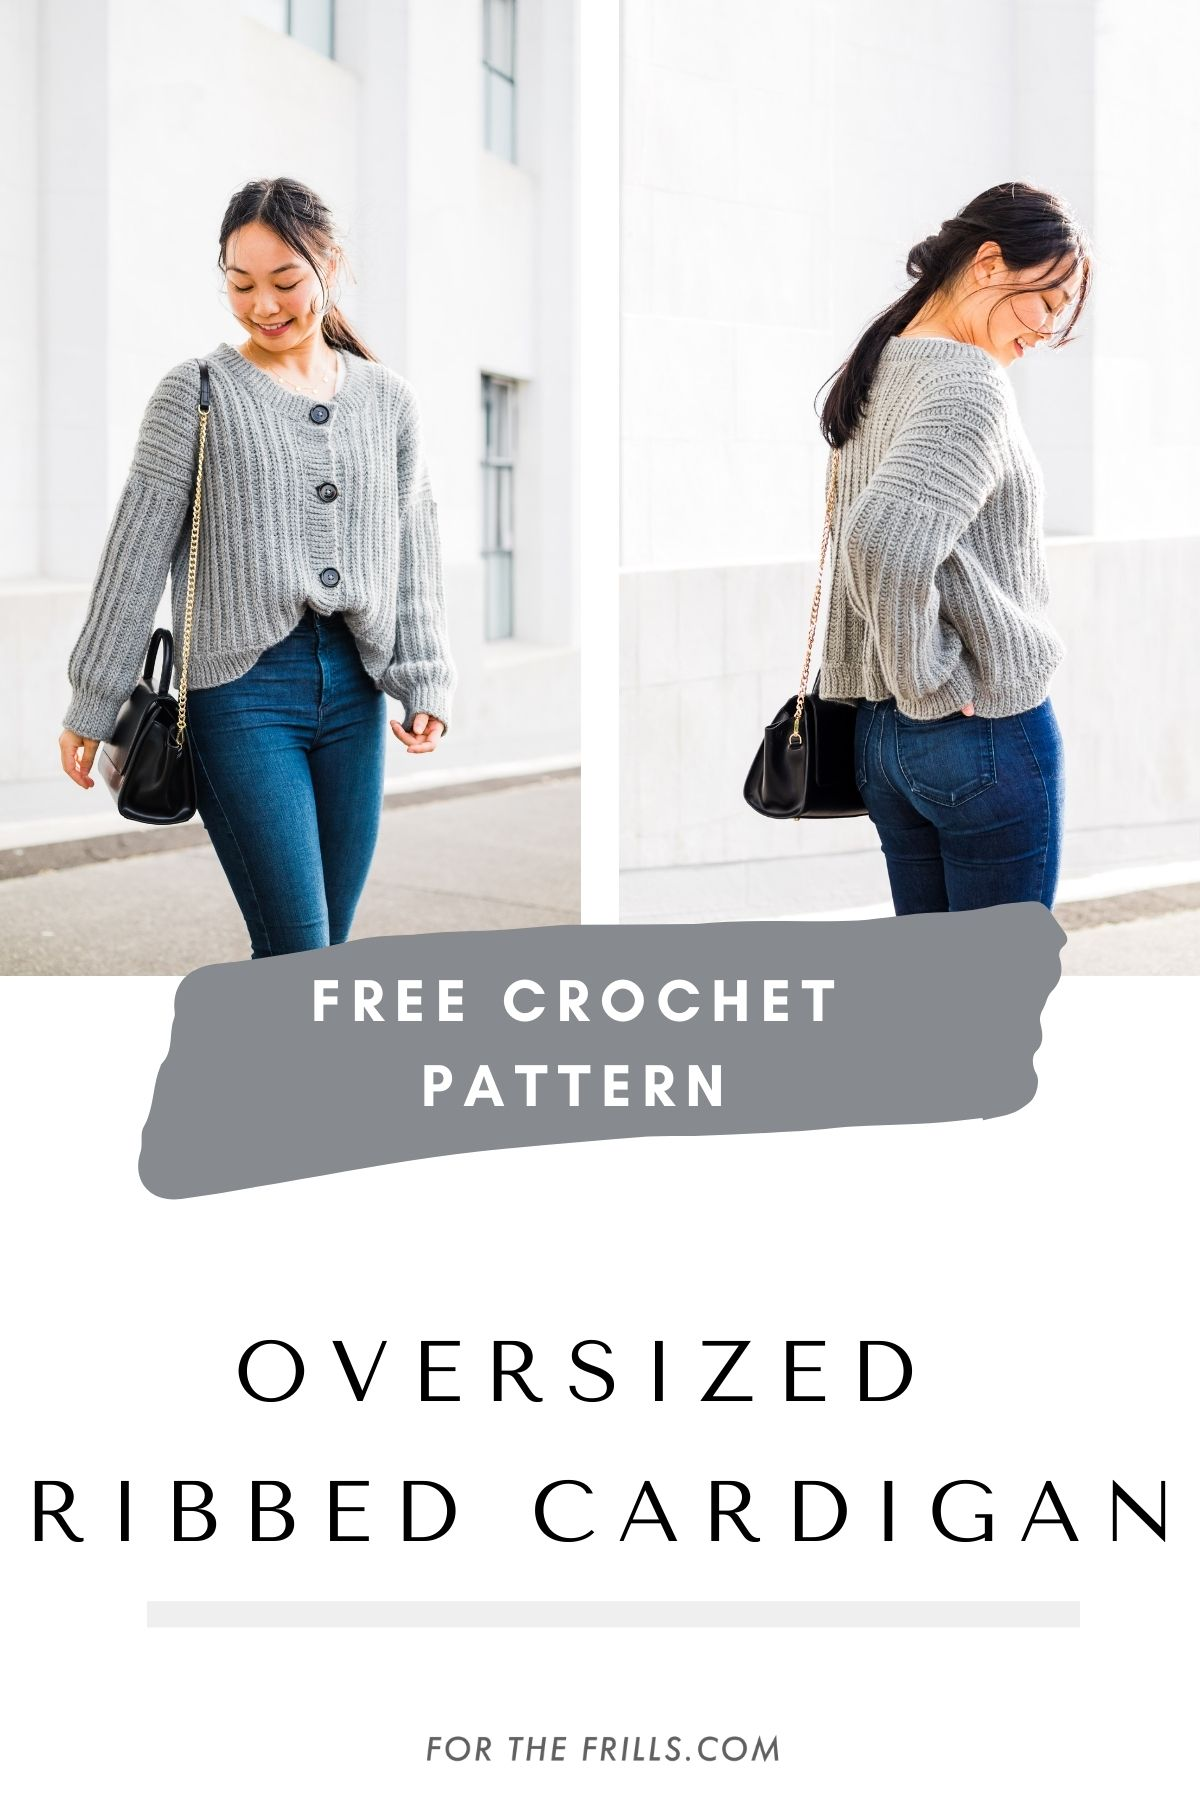 pinterest graphic with oversized grey cardigan crocheted with large black buttons and ribbed textured